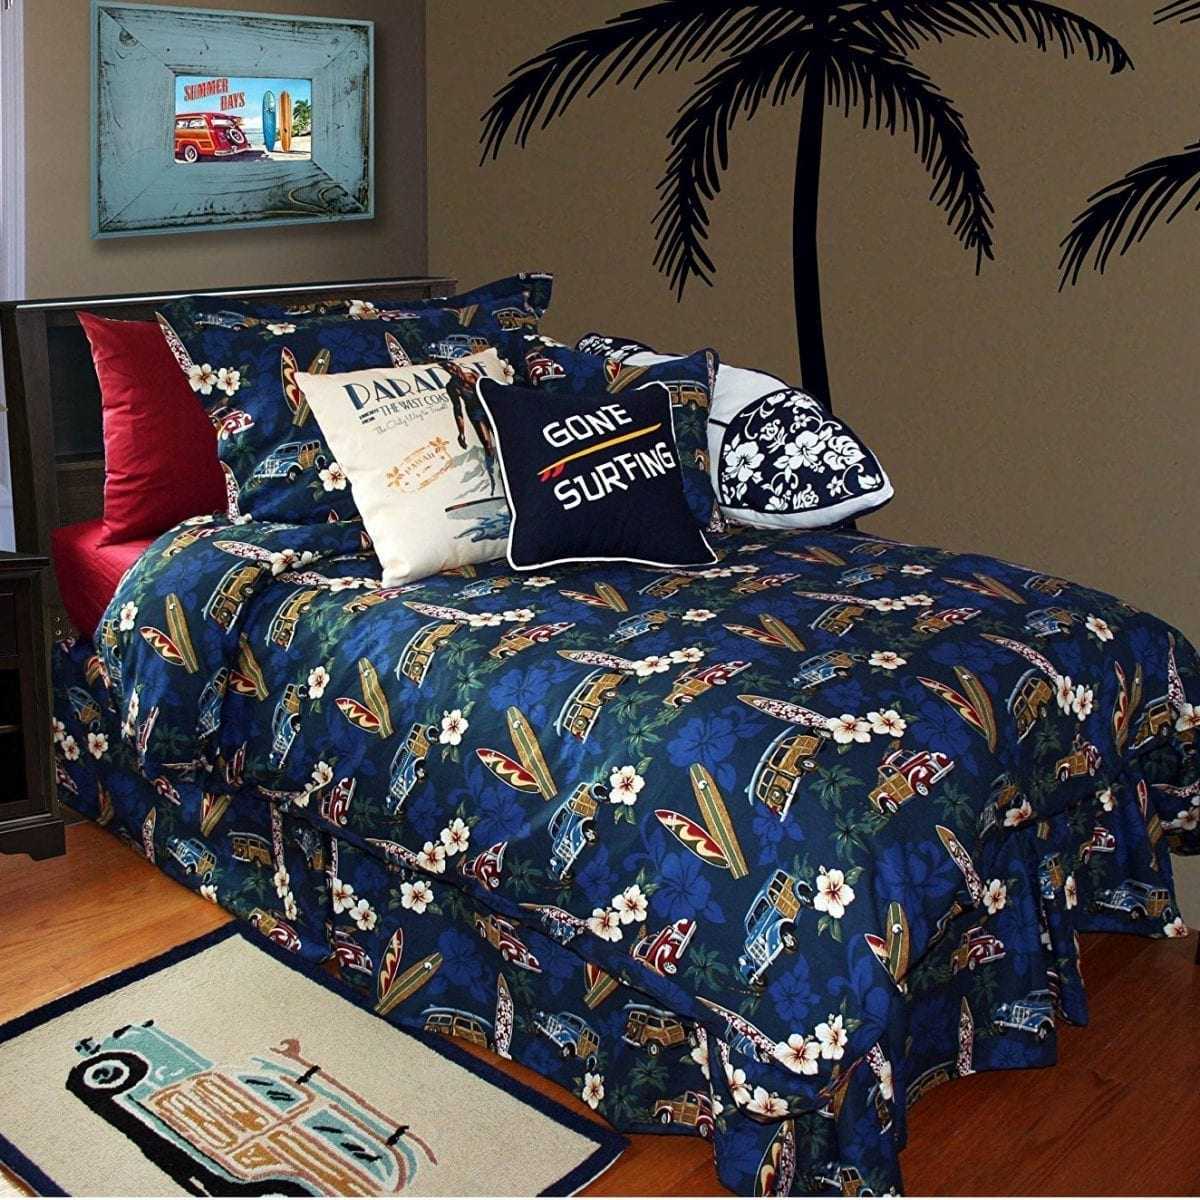 surf-bedding-set Coastal Bedding Sets & Beach Bedding Sets